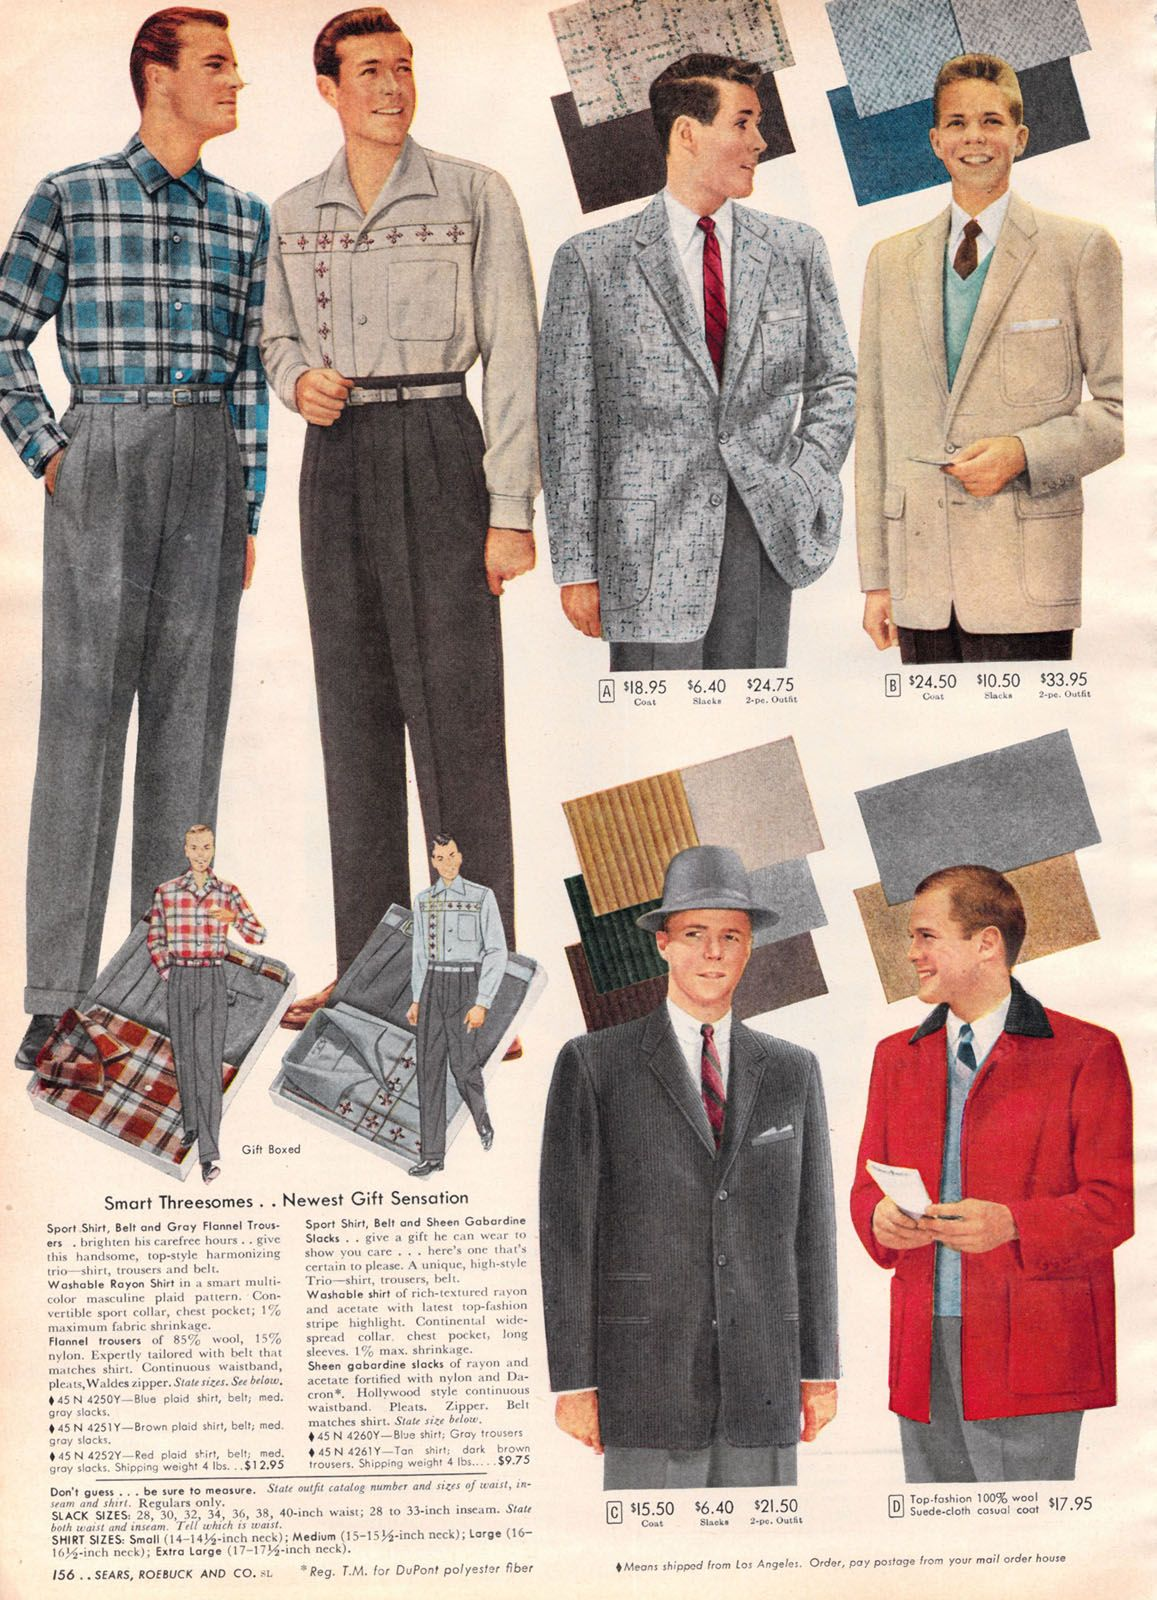 526ecaad Pin by Chris G on Vintage Menswear in 2019 | Fashion, 1950s fashion ...